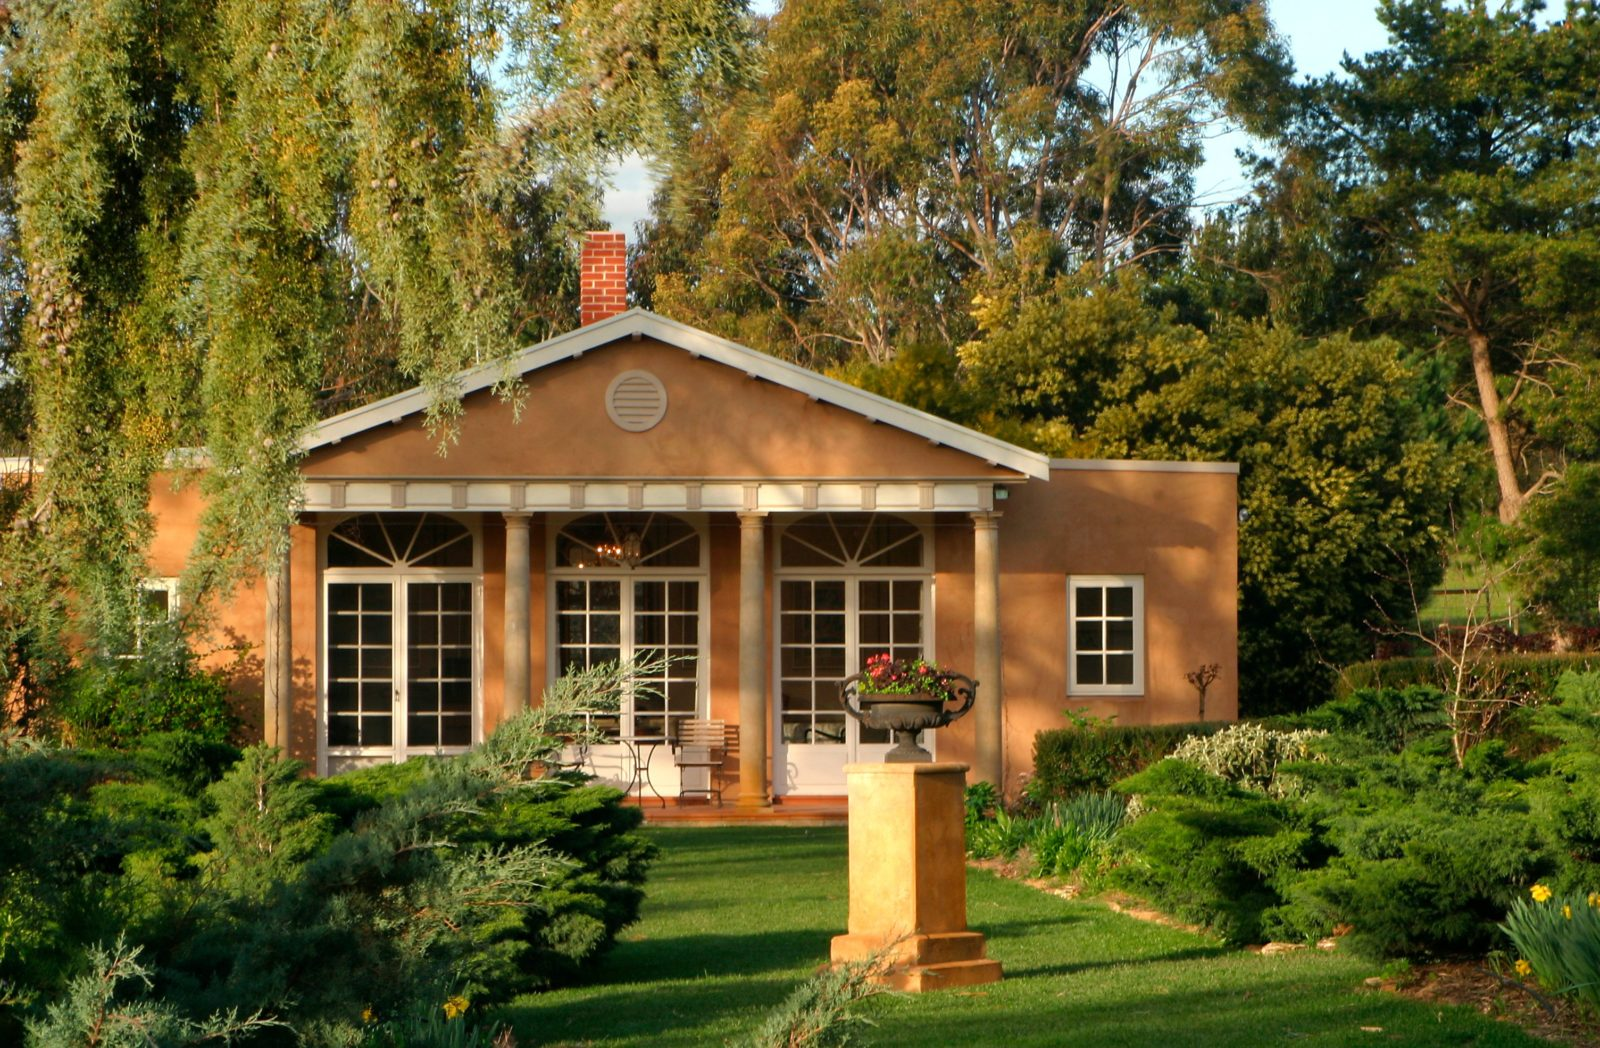 Bed and Breakfast Garden Pavillion